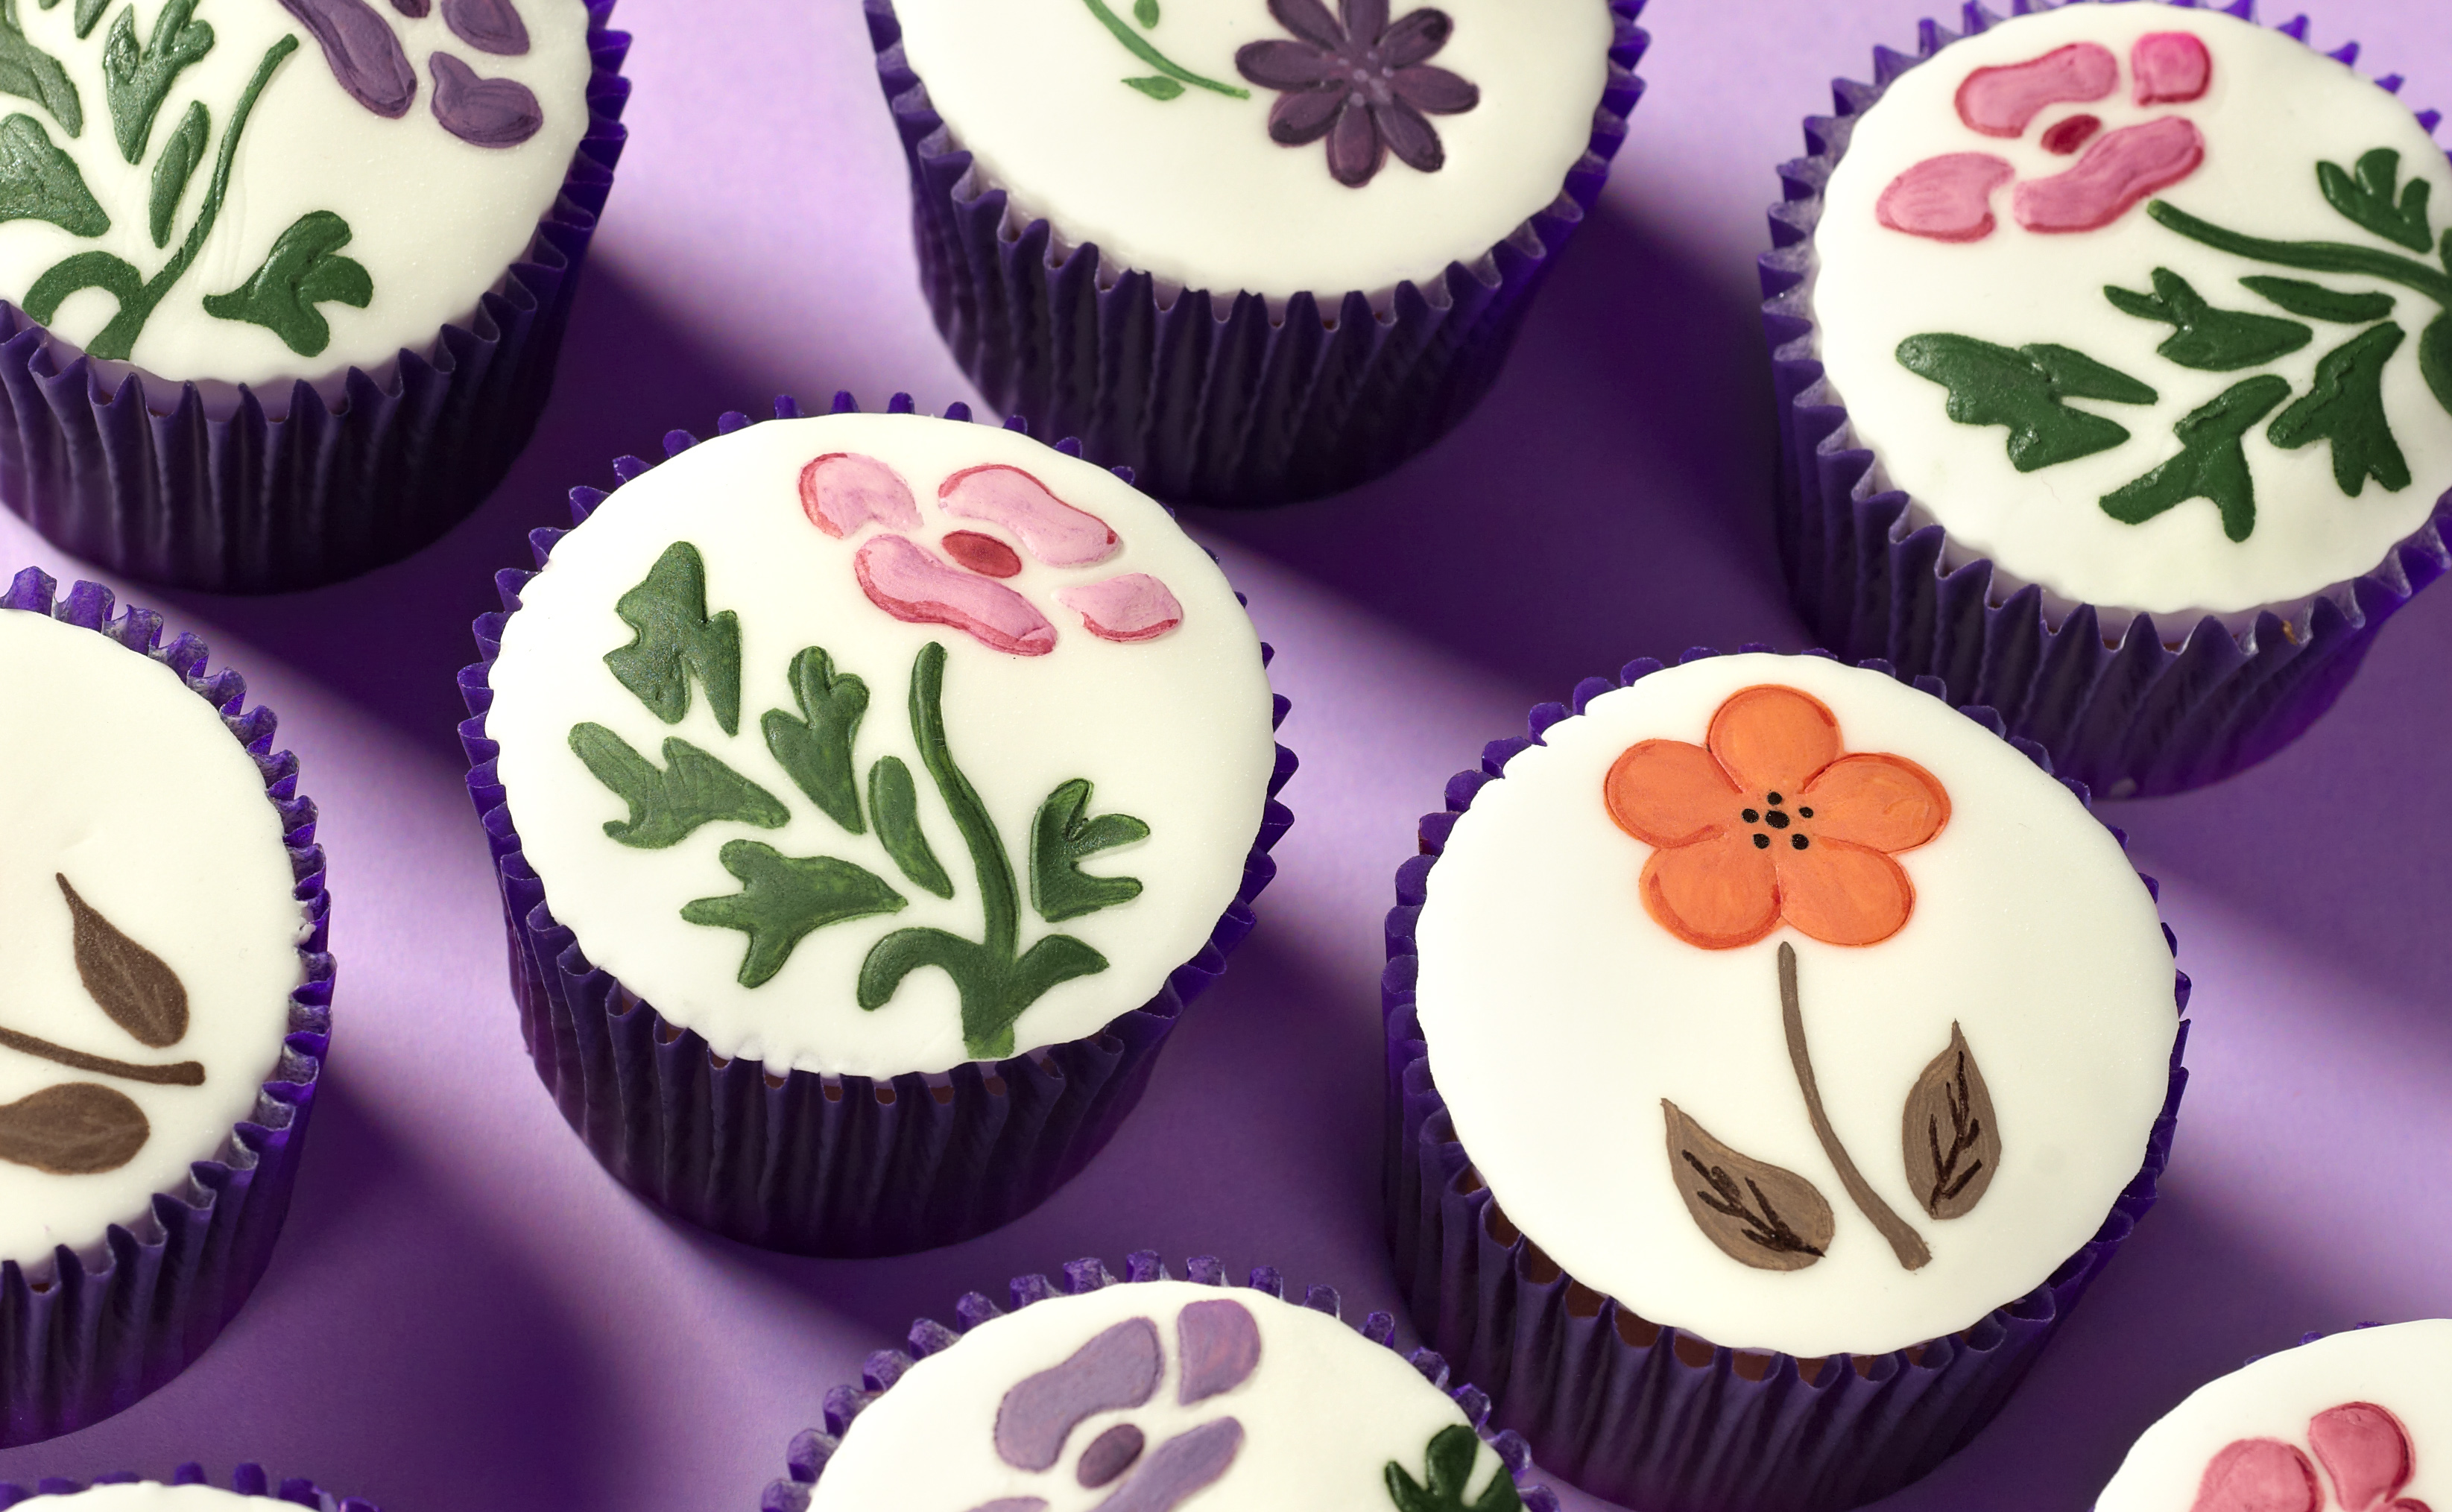 Painted Flower Cupcakes Recipe